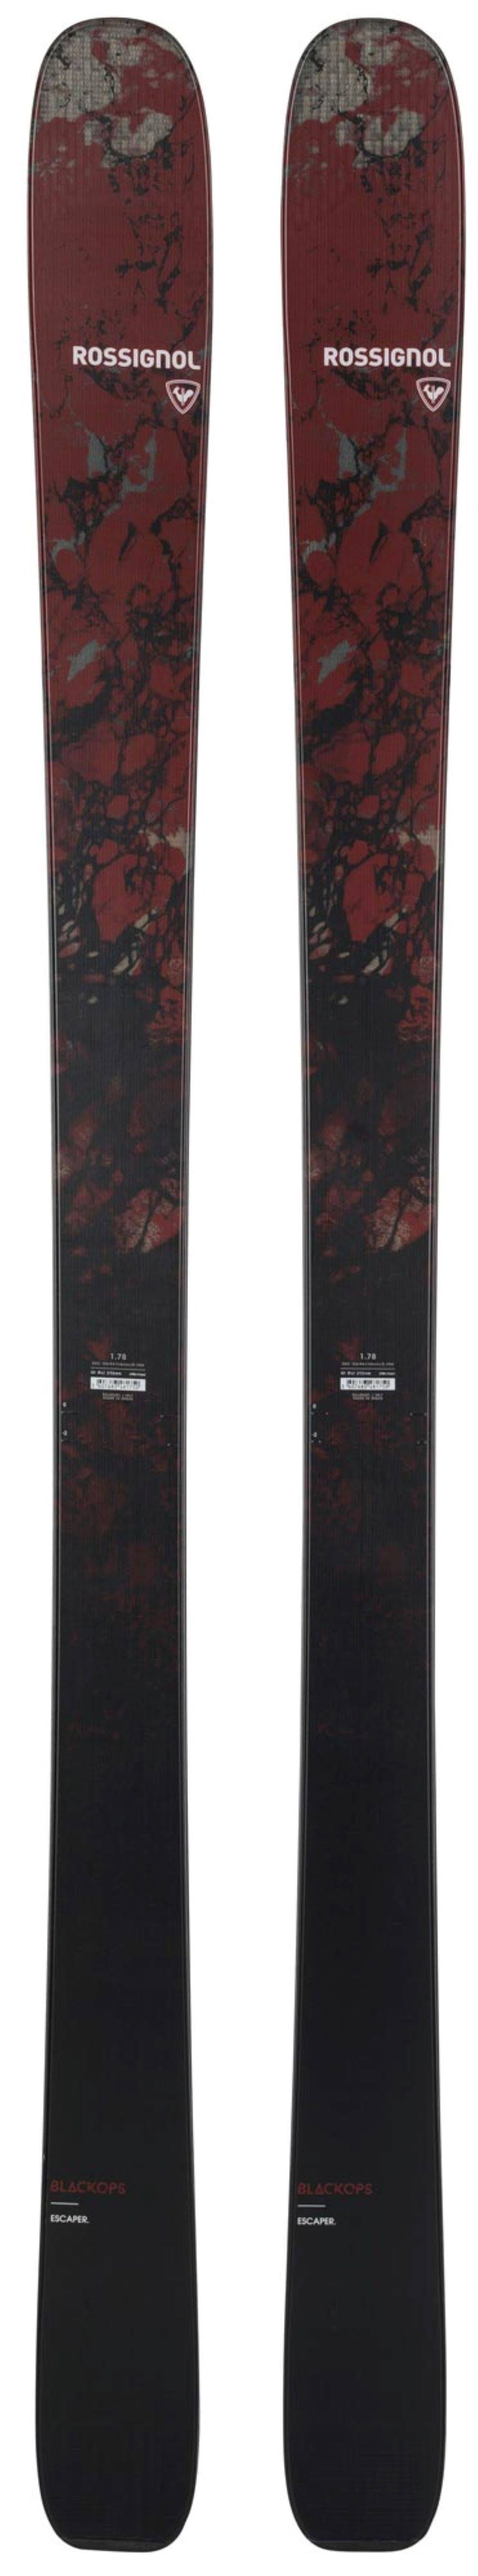 Rossignol Blackops Escaper Skis · 2021